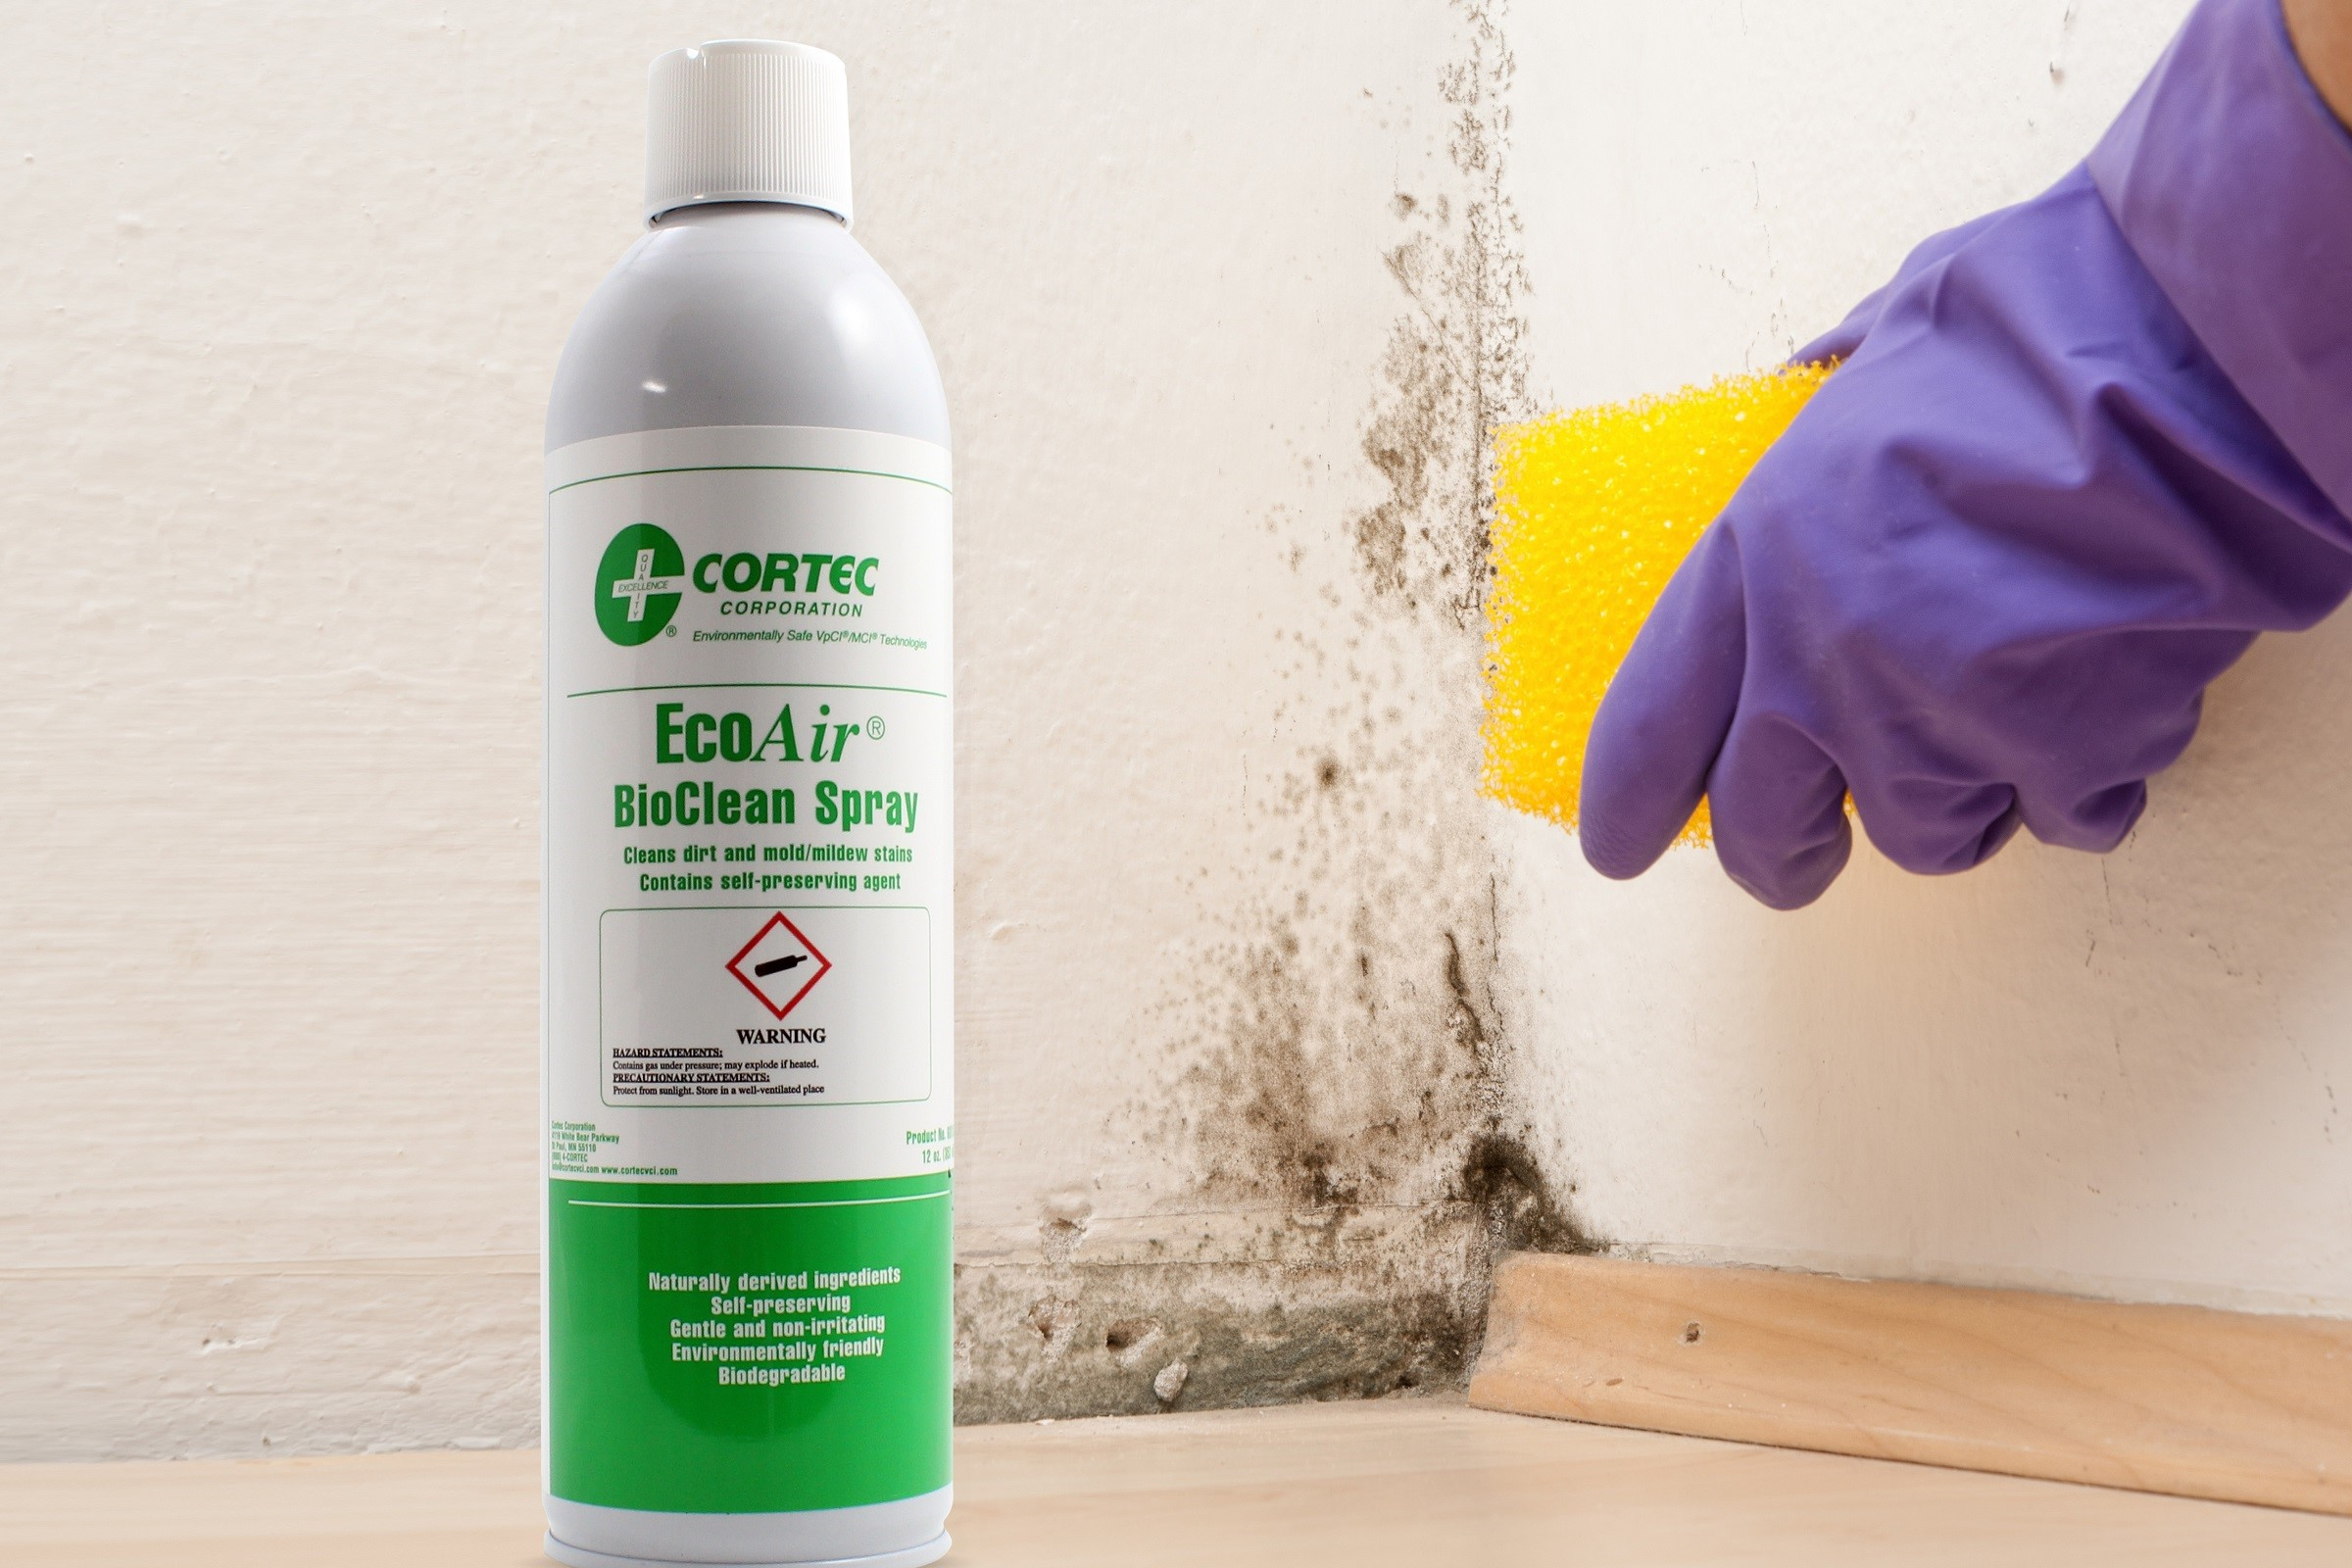 EcoAir BioClean Spray